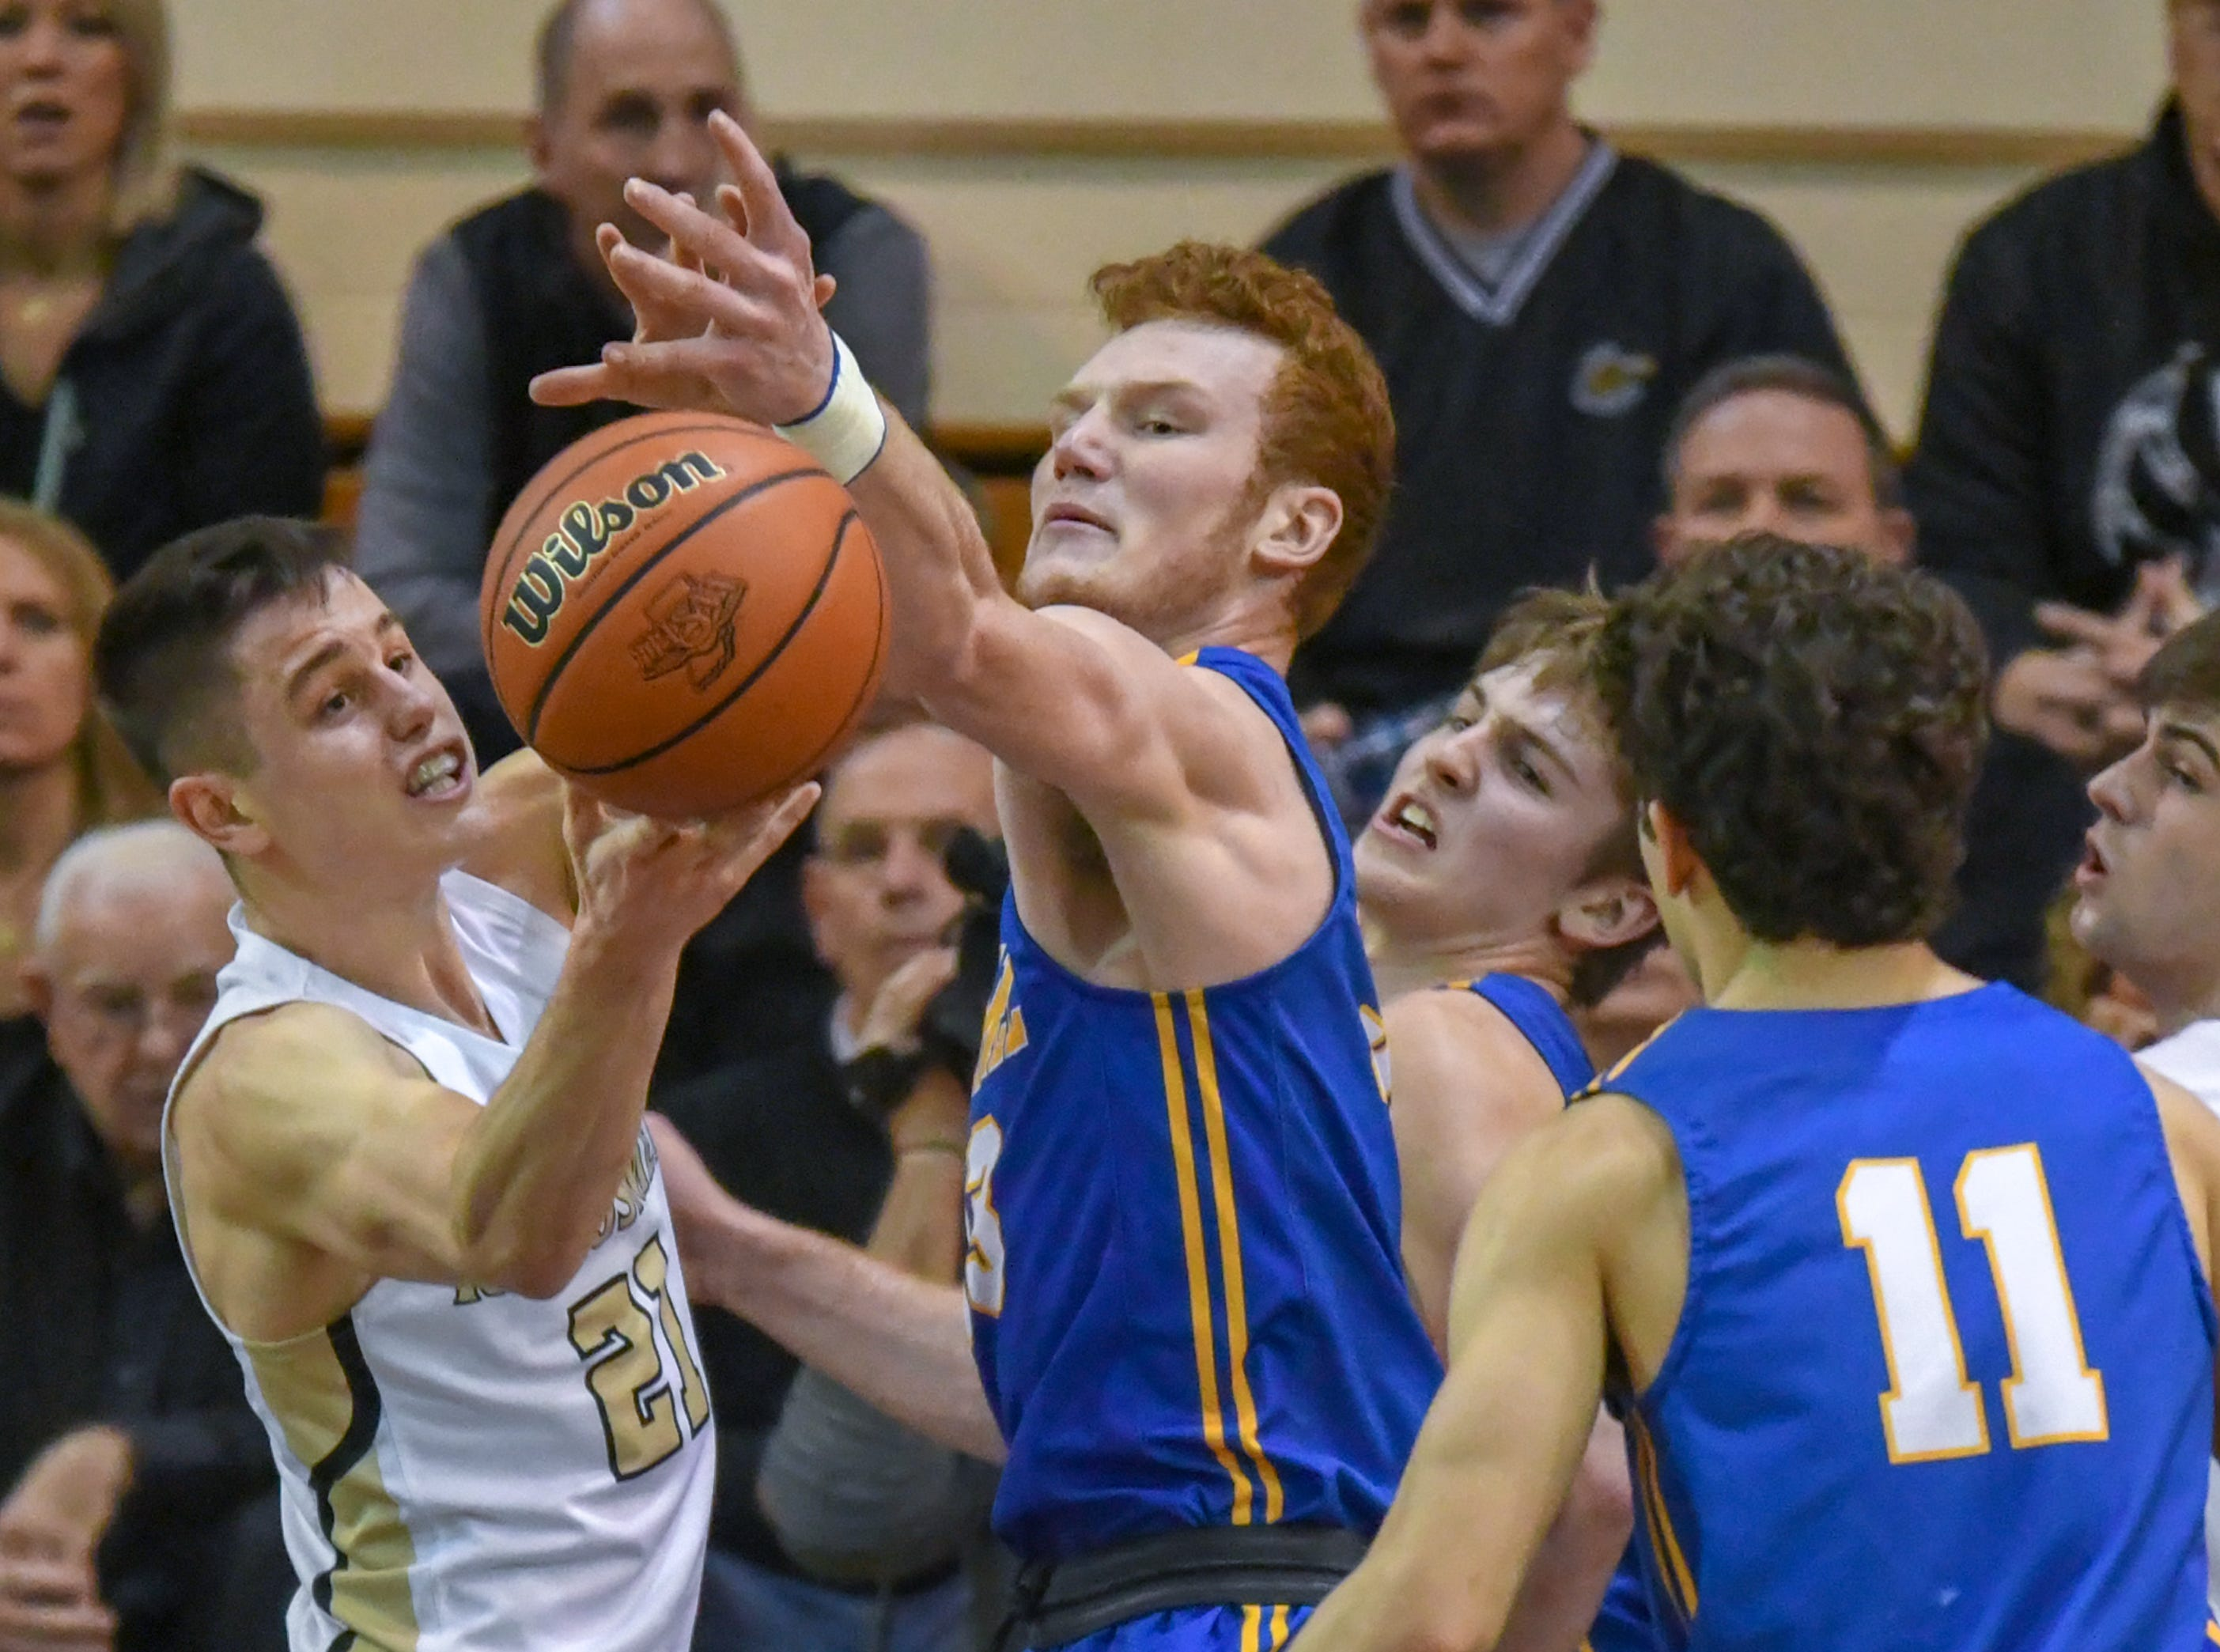 Carmel's John-Michael Mulloy battles for the ball during his teams 71-42 win over Penn High School in Lafayette on Saturday March 16, 2019. Carmel moves on to the state finals after winning the 4A semi-state today.